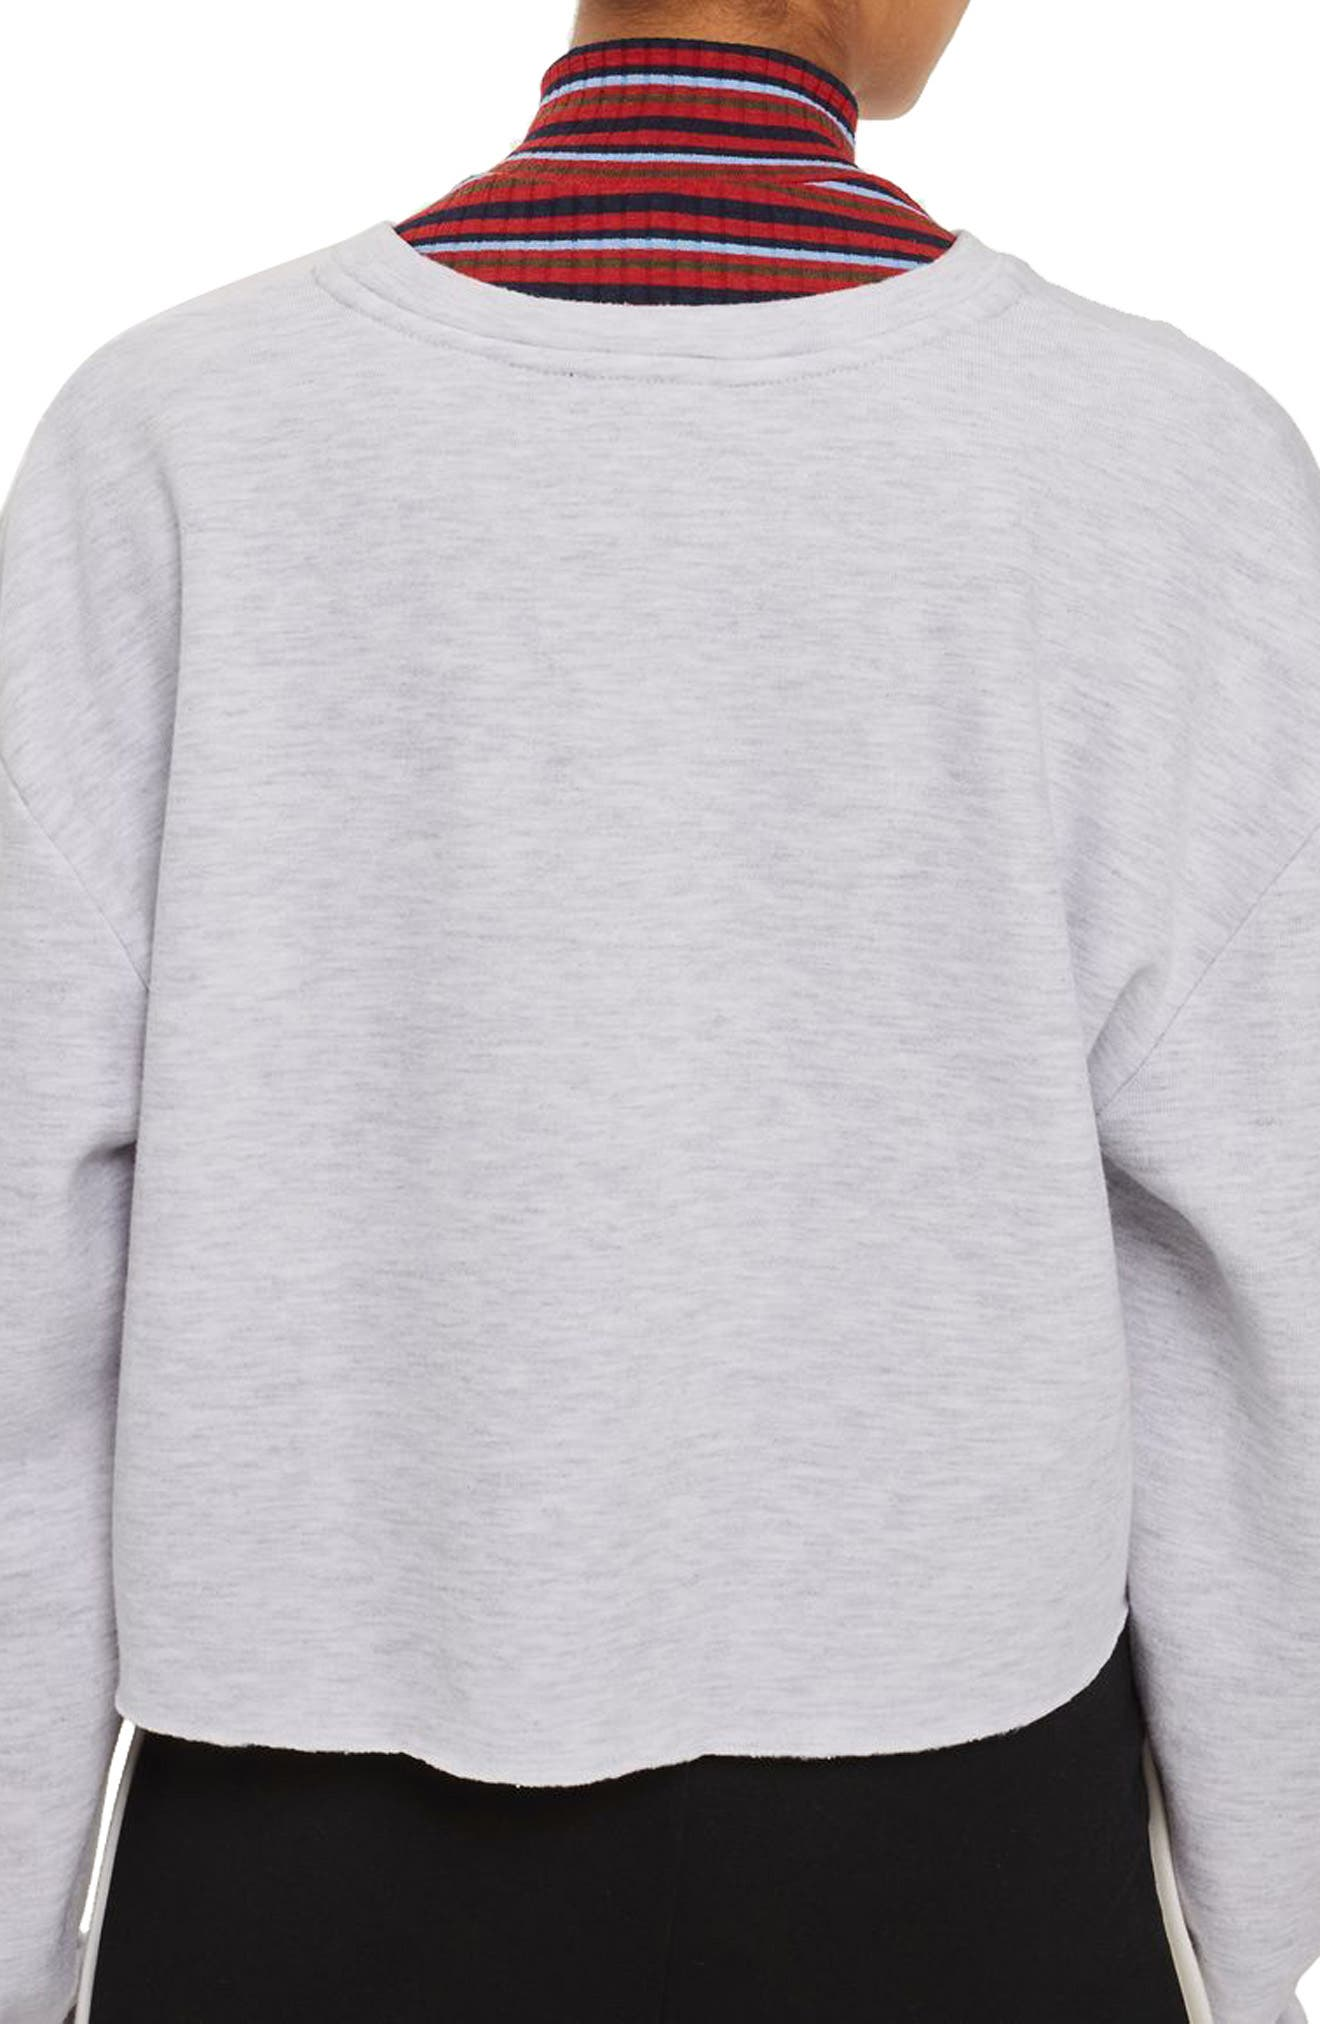 Crop Sweatshirt,                             Alternate thumbnail 3, color,                             Grey Marl